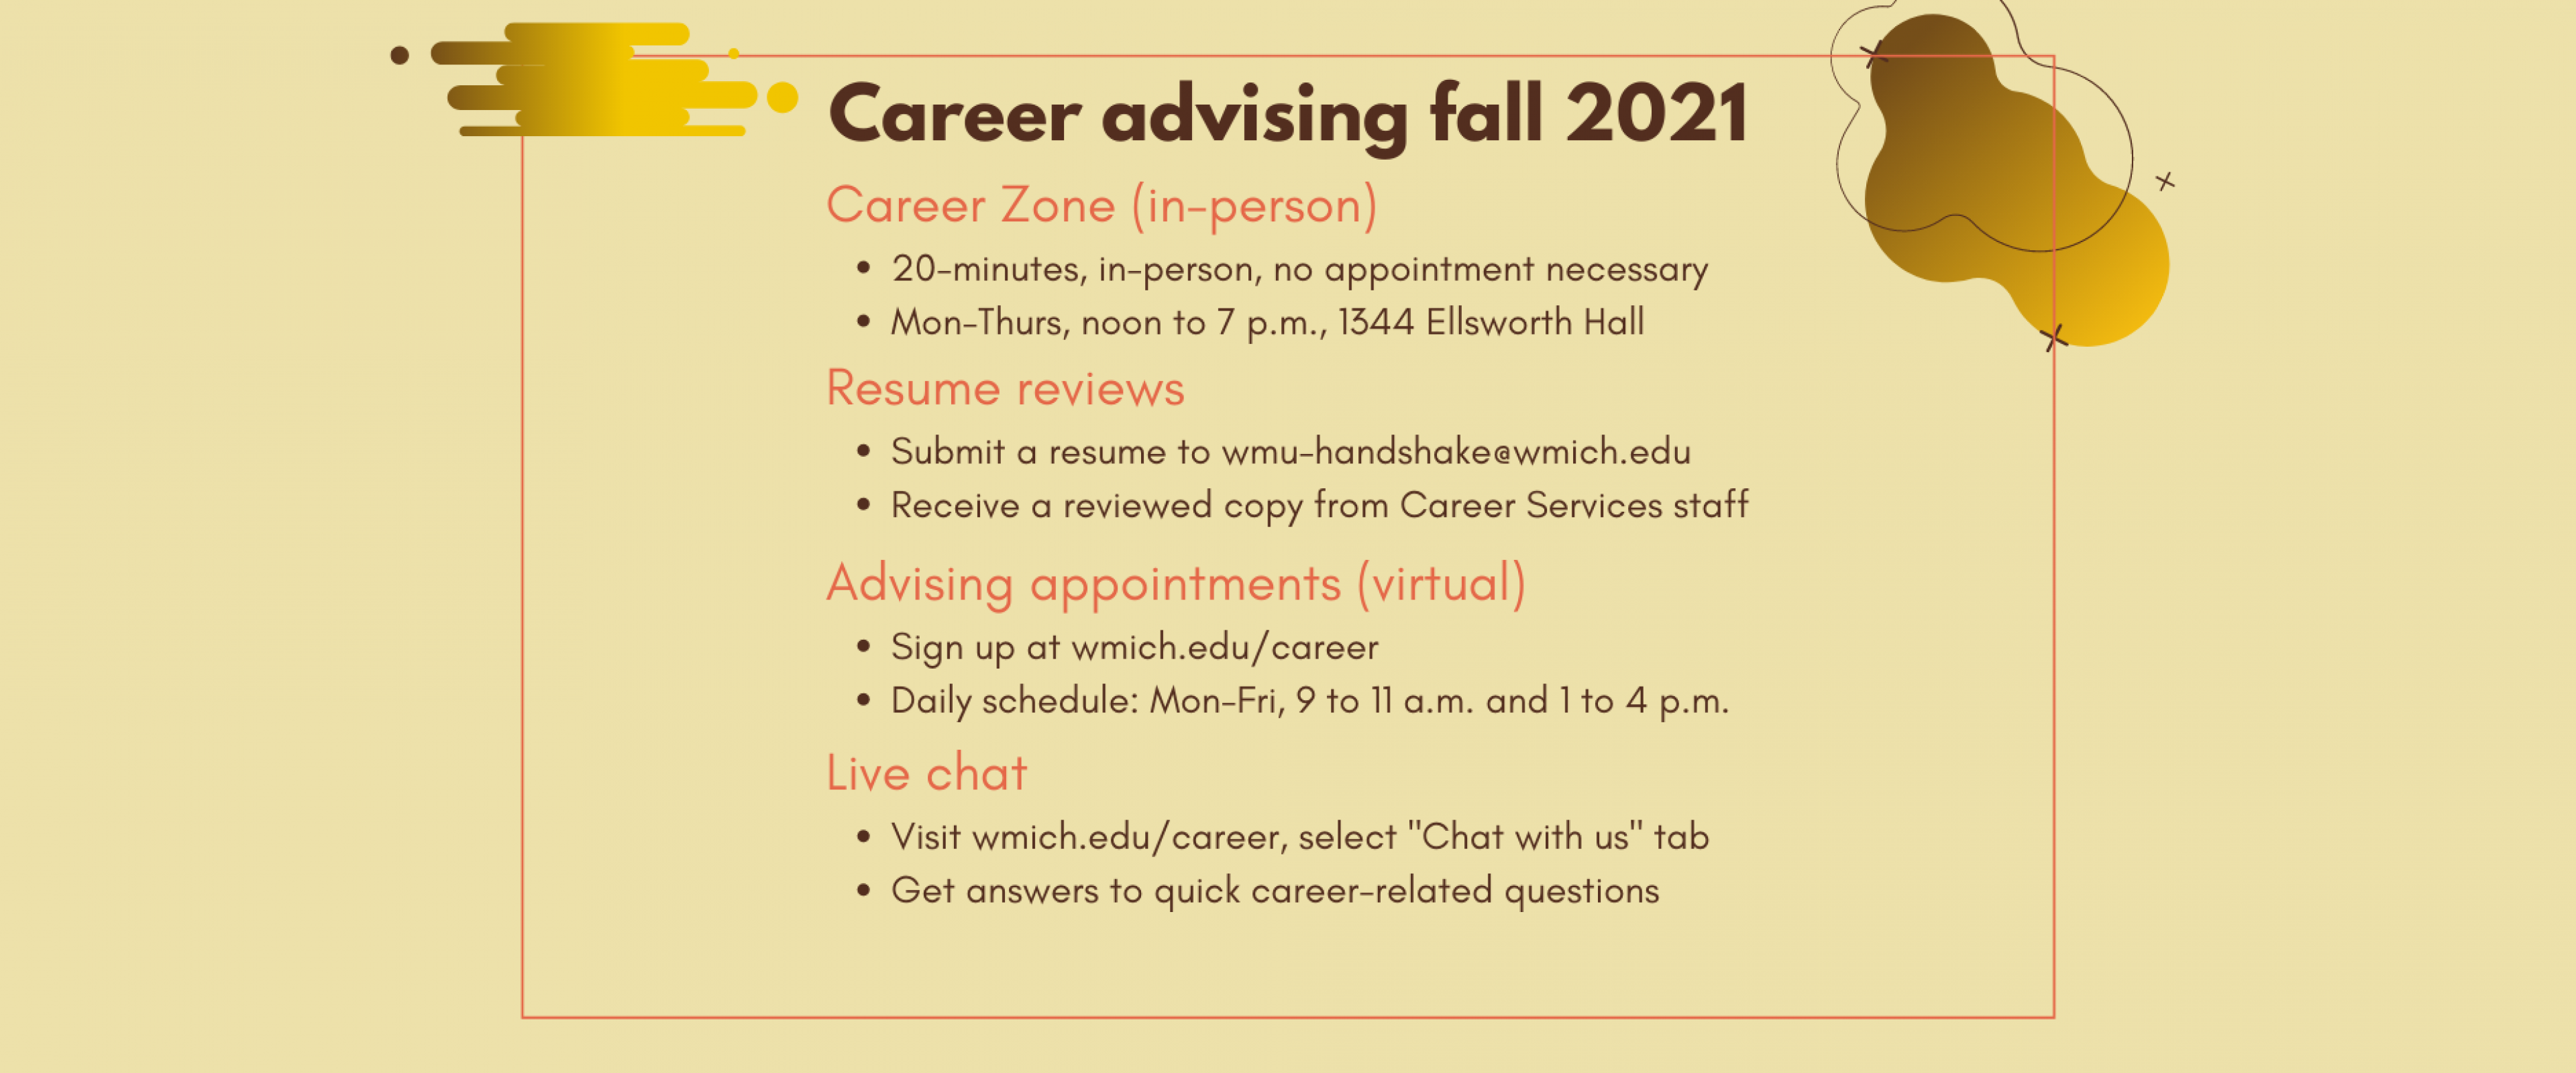 """Career advising fall 2021: 1) Career Zone is 20 minute sessions, in-person, no appointment necessary; open Monday through Thursday, noon to 7 p.m., 1344 Ellsworth Hall. 2) Resume reviews: submit a resume to wmu-handshake@wmich.edu; receive a reviewed copy from Career Services staff. 3) Virtual advising appointments: sign up at wmich.edu/career; daily schedule is Monday through Friday, 9 to 11 a.m. and 1 to 4 p.m. 4) Live chat: visit wmich.edu/career, select """"Chat with us"""" tab for answers to career questions"""